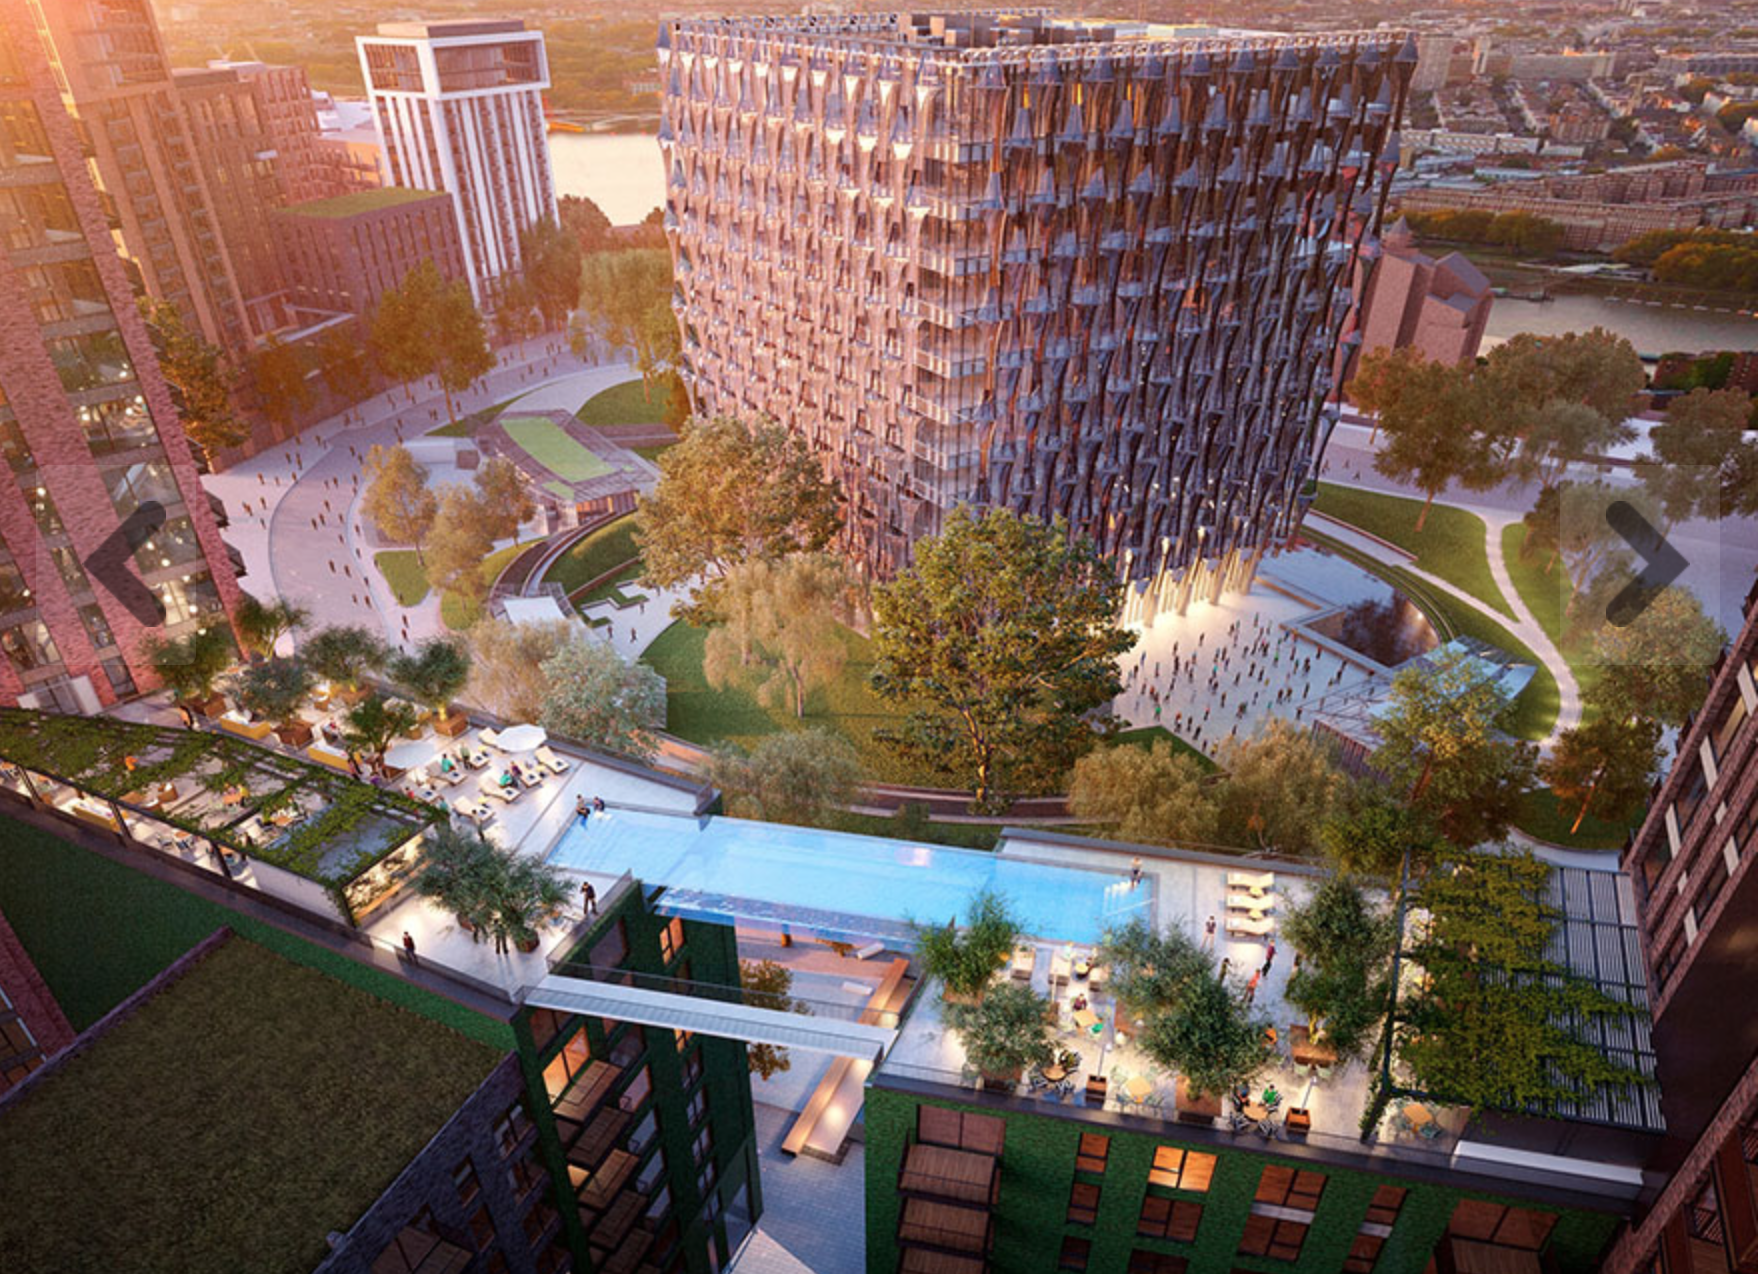 Sky Pool will serve as a tourist attraction after Embassy Gardens is completed in 2018.